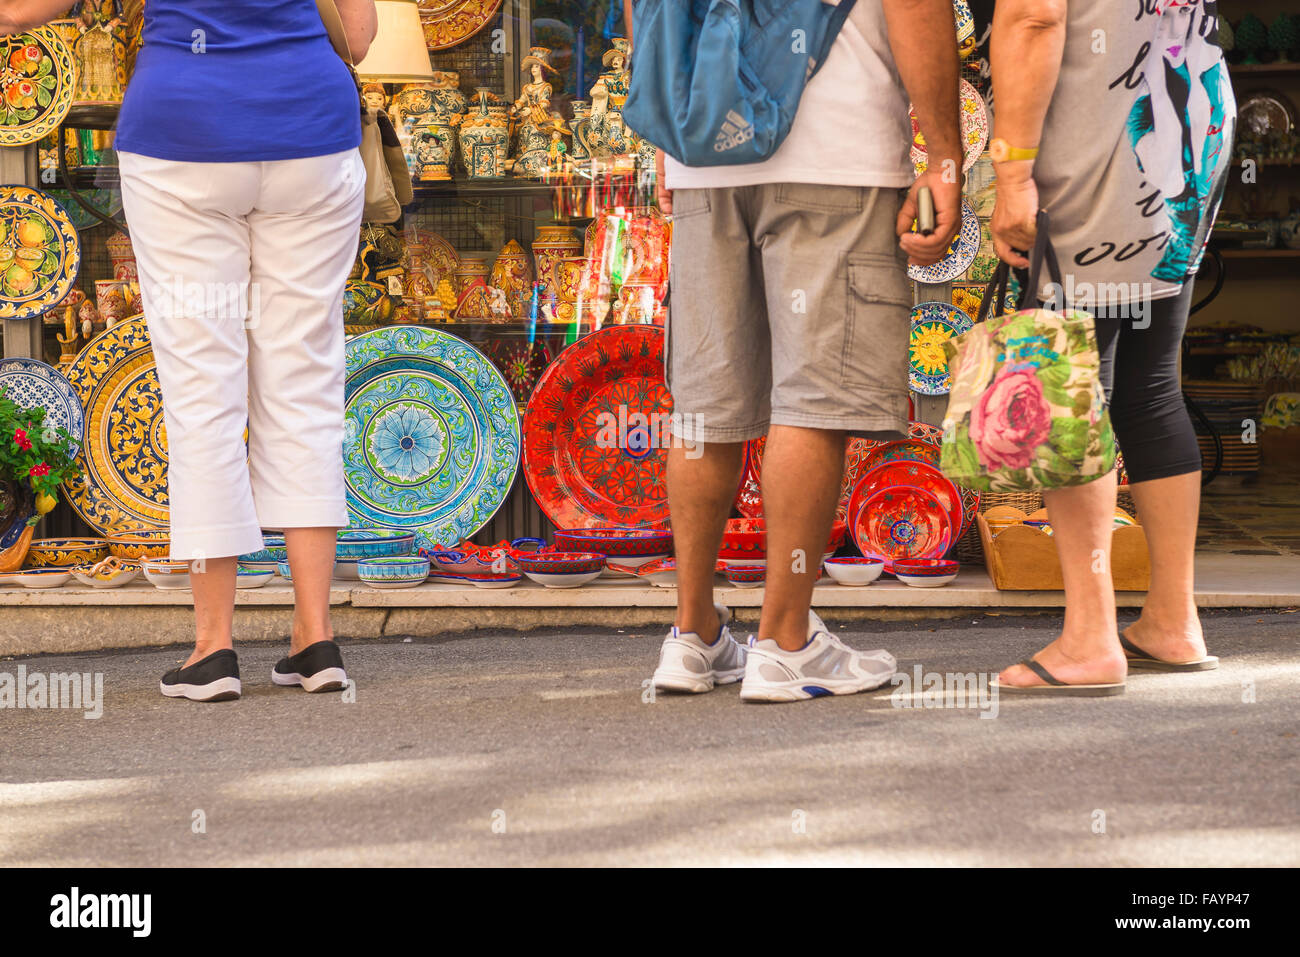 Tourists shopping Sicily, rear view of tourists in a Taormina street pausing to look at colourful ceramic plates - Stock Image